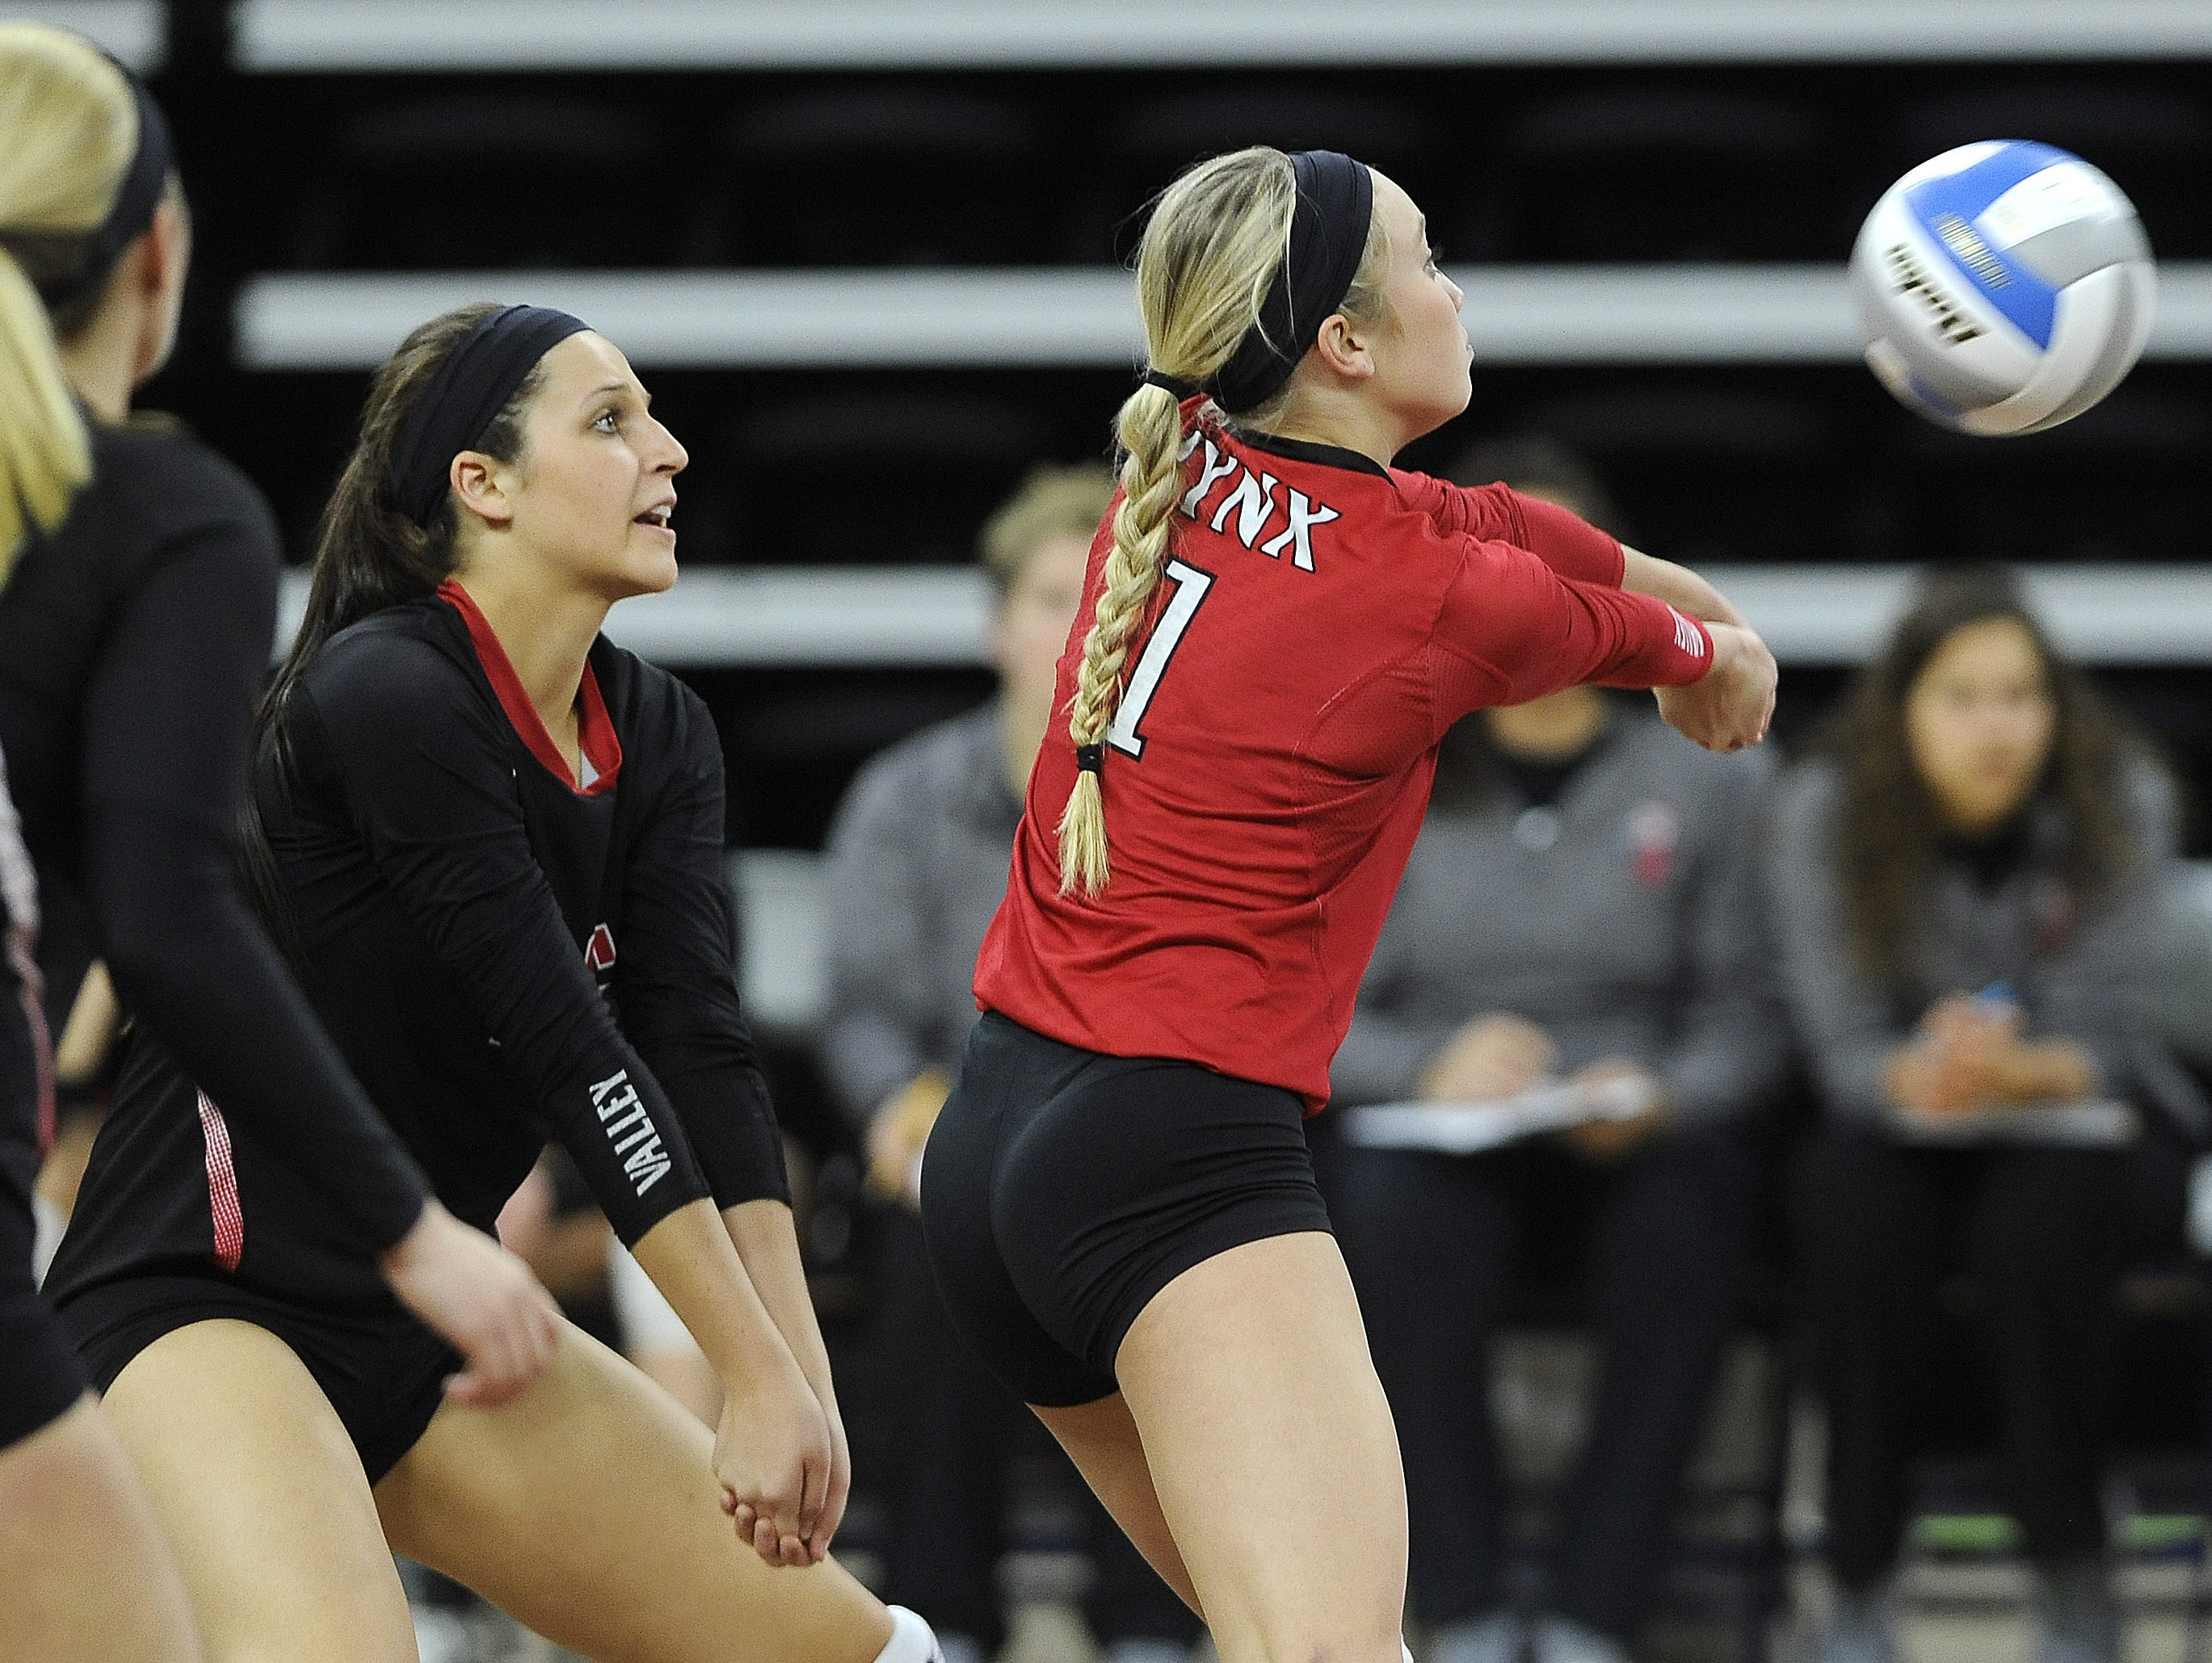 Brandon Valley's #1 Taylor Thorson bumps the volleyball against Roosevelt during state volleyball action at the Denny Sanford Premier Center in Sioux Falls, S.D., Thursday, Nov. 19, 2015.